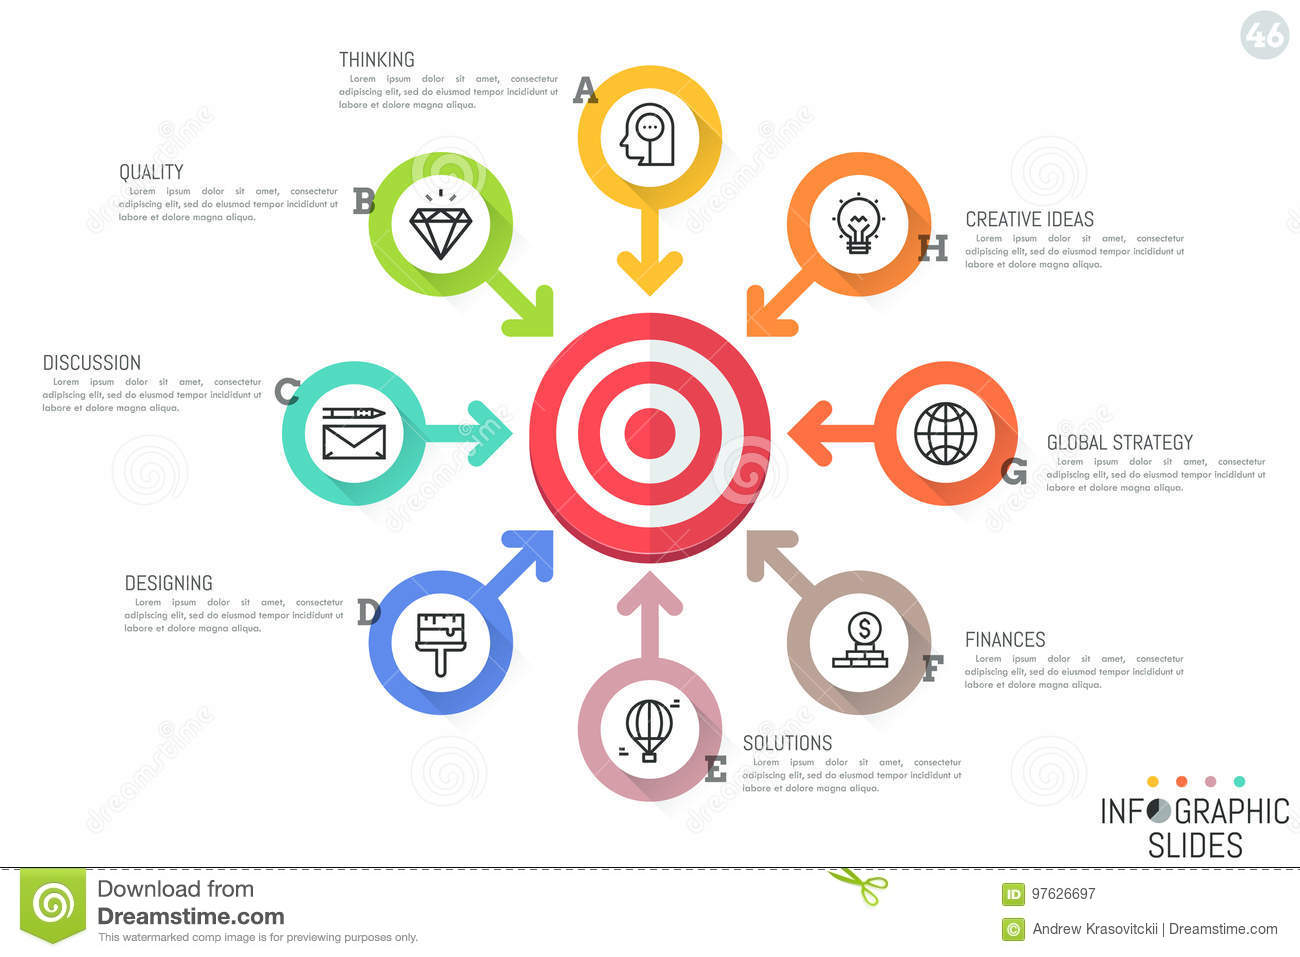 hight resolution of flower petal diagram with 8 circular elements icons text boxes and arrows pointing at target world business problems and global strategies concept